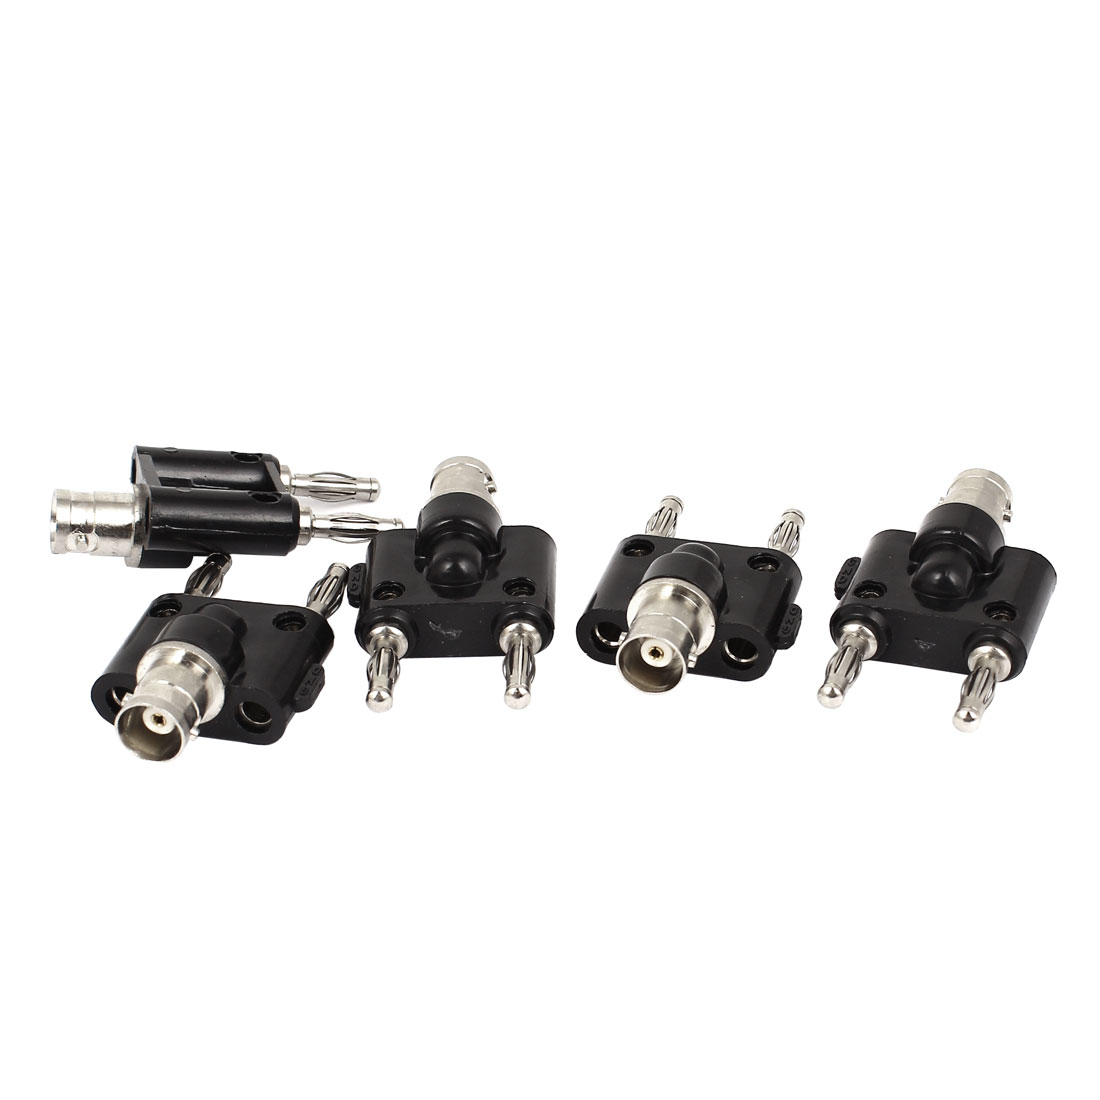 5PCS BNC Female Jack to Dual Stacking Banana Male Connector Adapter